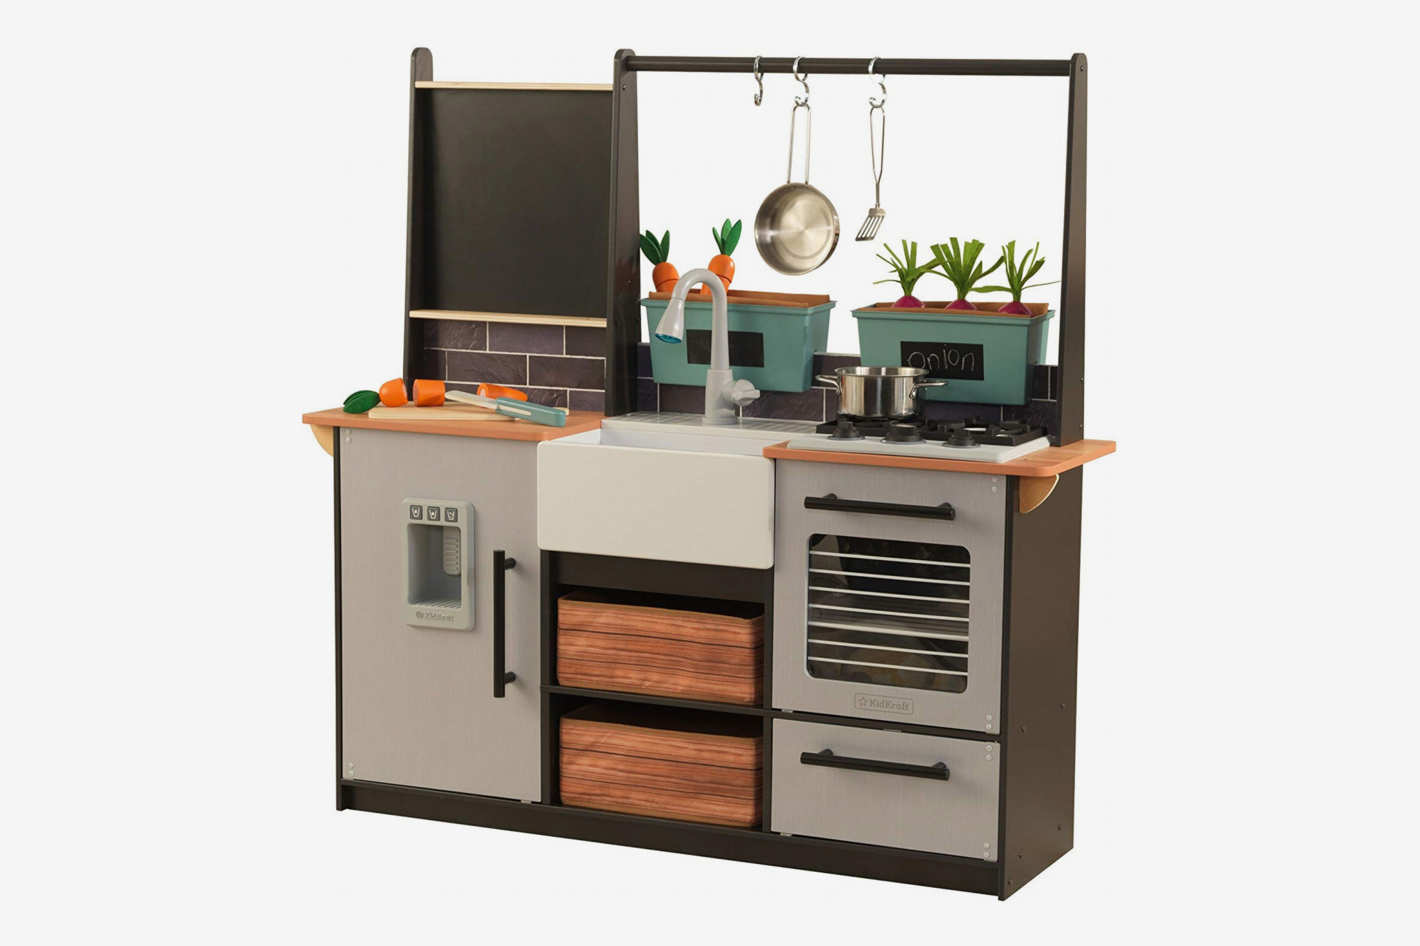 Toddler Toy Kitchen for Preschool Classroom